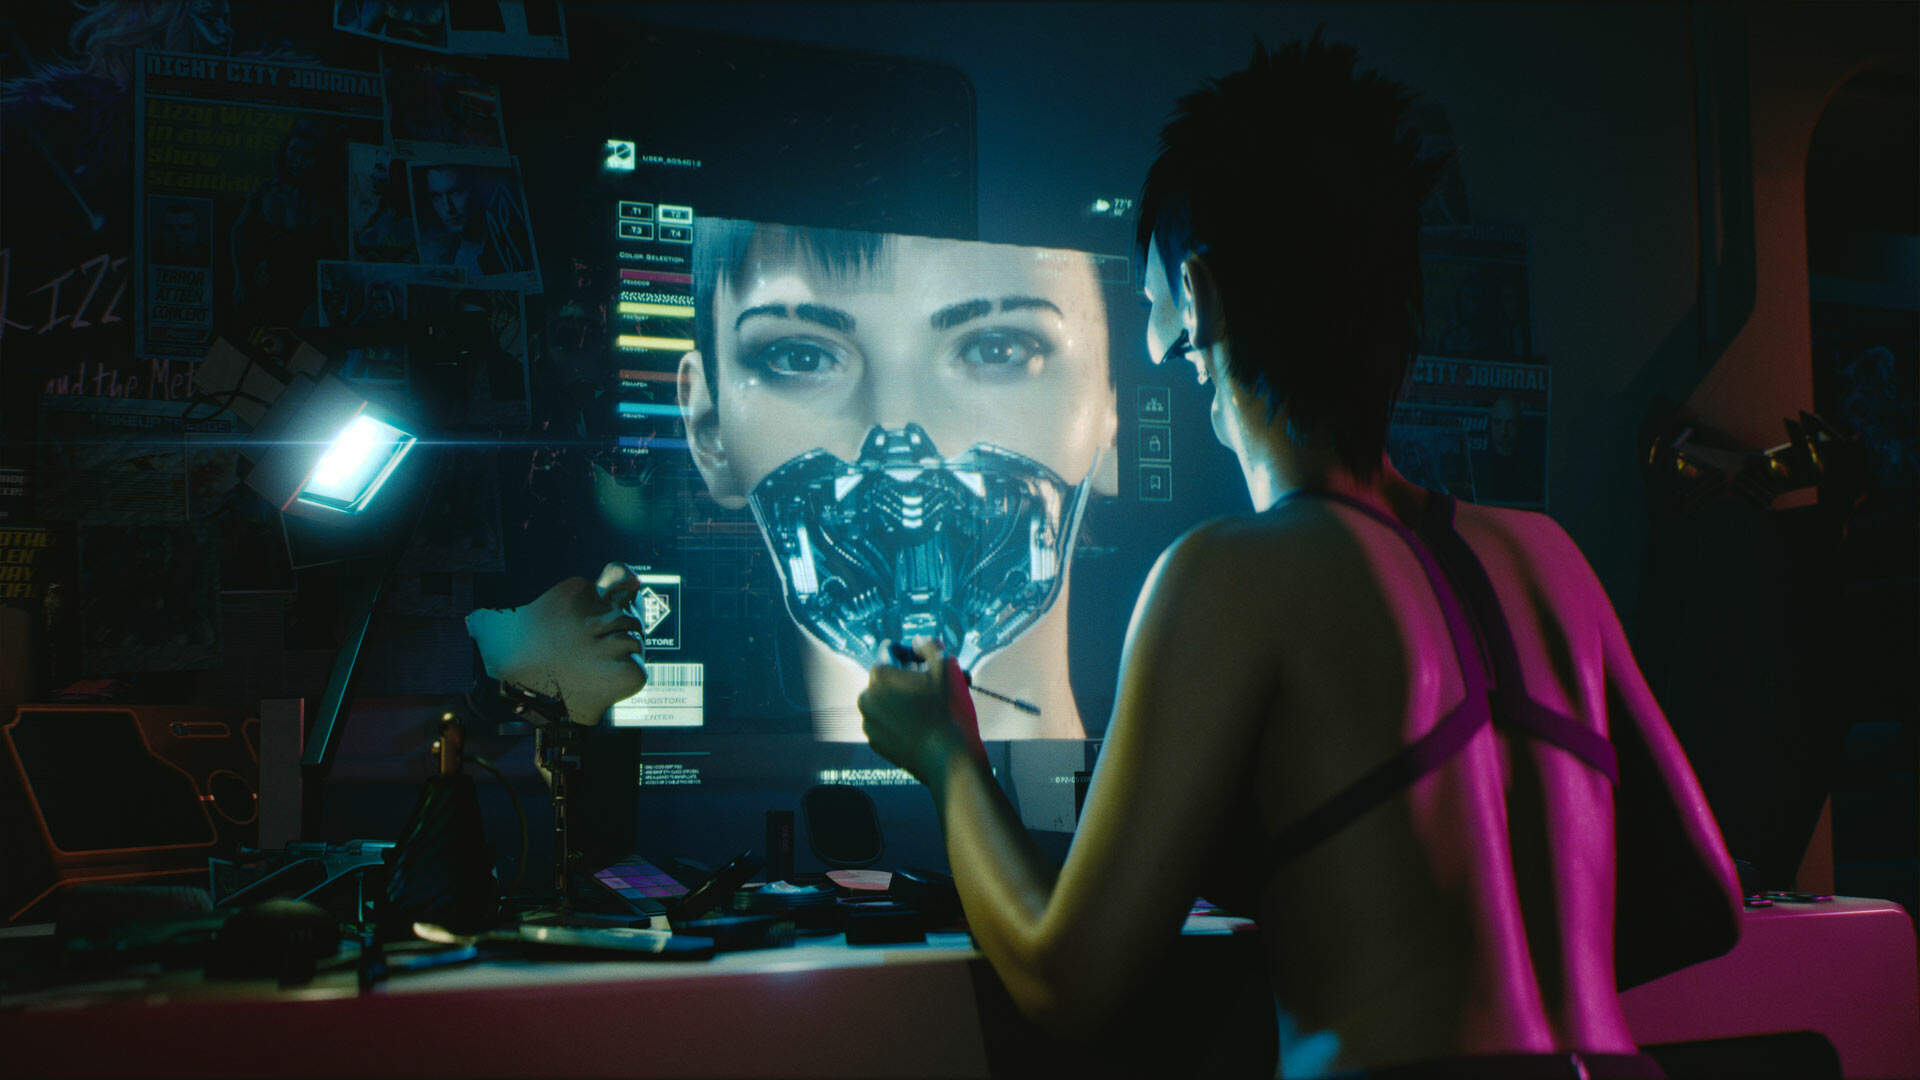 Cyberpunk 2077's Lead Quest Designer Says It Will Have More Romances Than Witcher 3